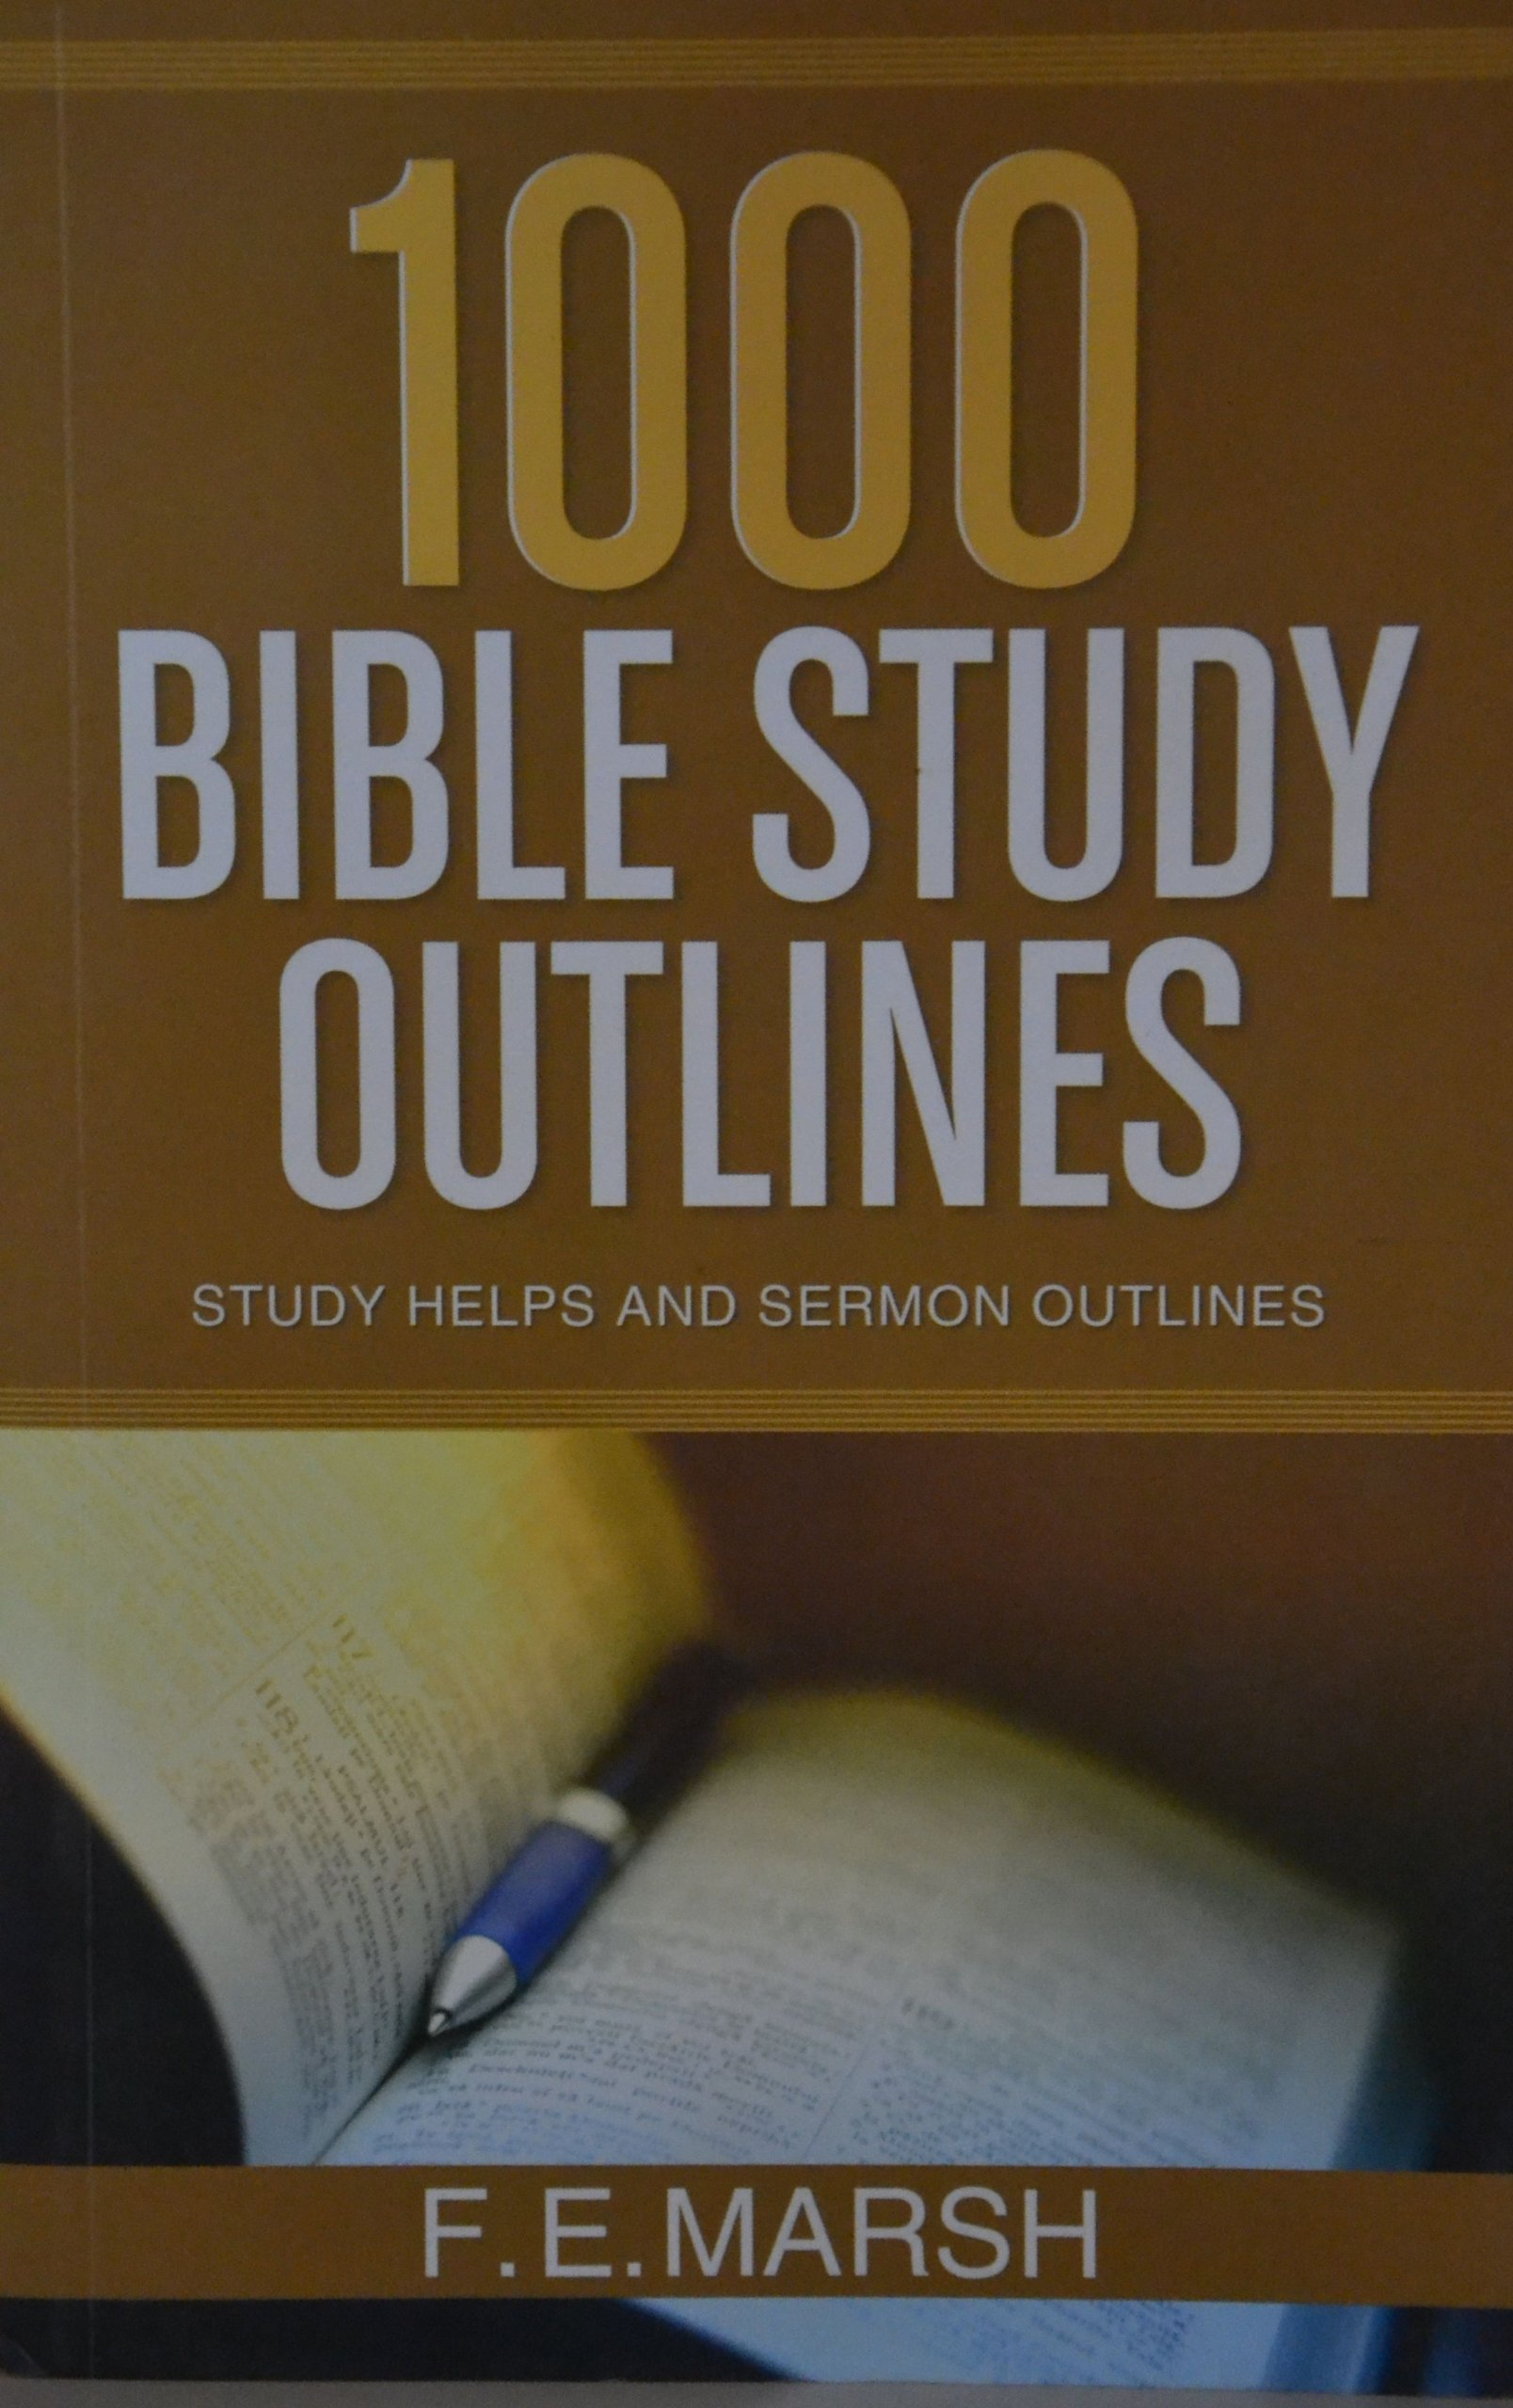 Buy 1000 Bible Study Outlines Book Online at Low Prices in India | 1000  Bible Study Outlines Reviews & Ratings - Amazon.in